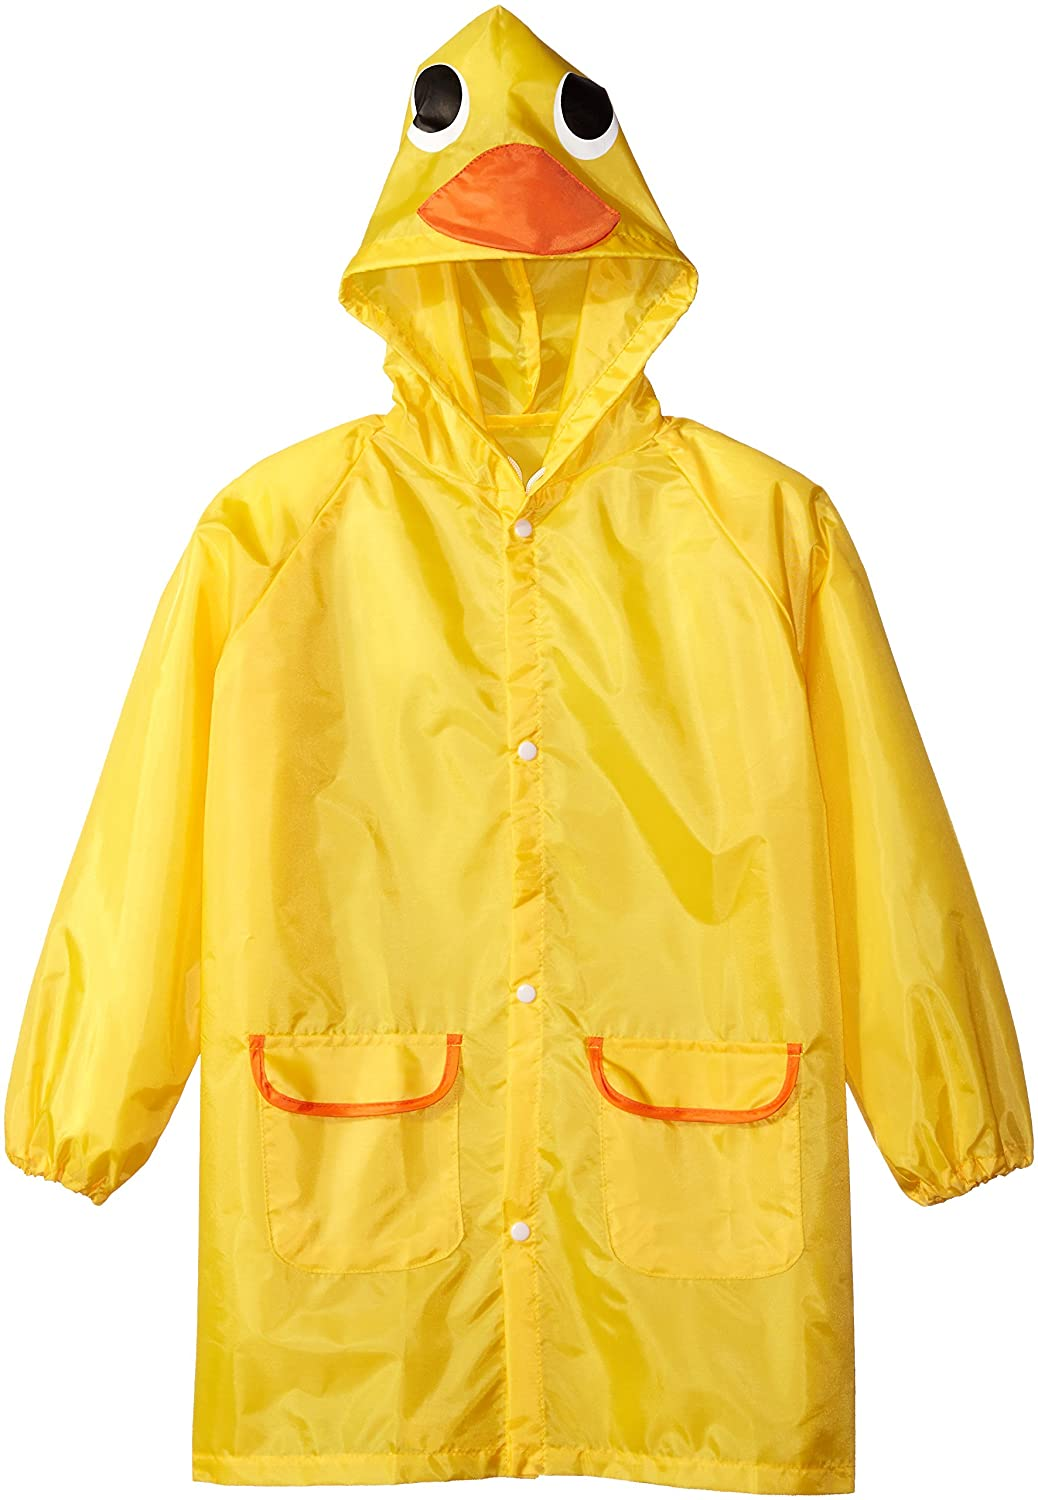 best site durable in use purchase cheap Children's Raincoat Duck,Ages 3-10